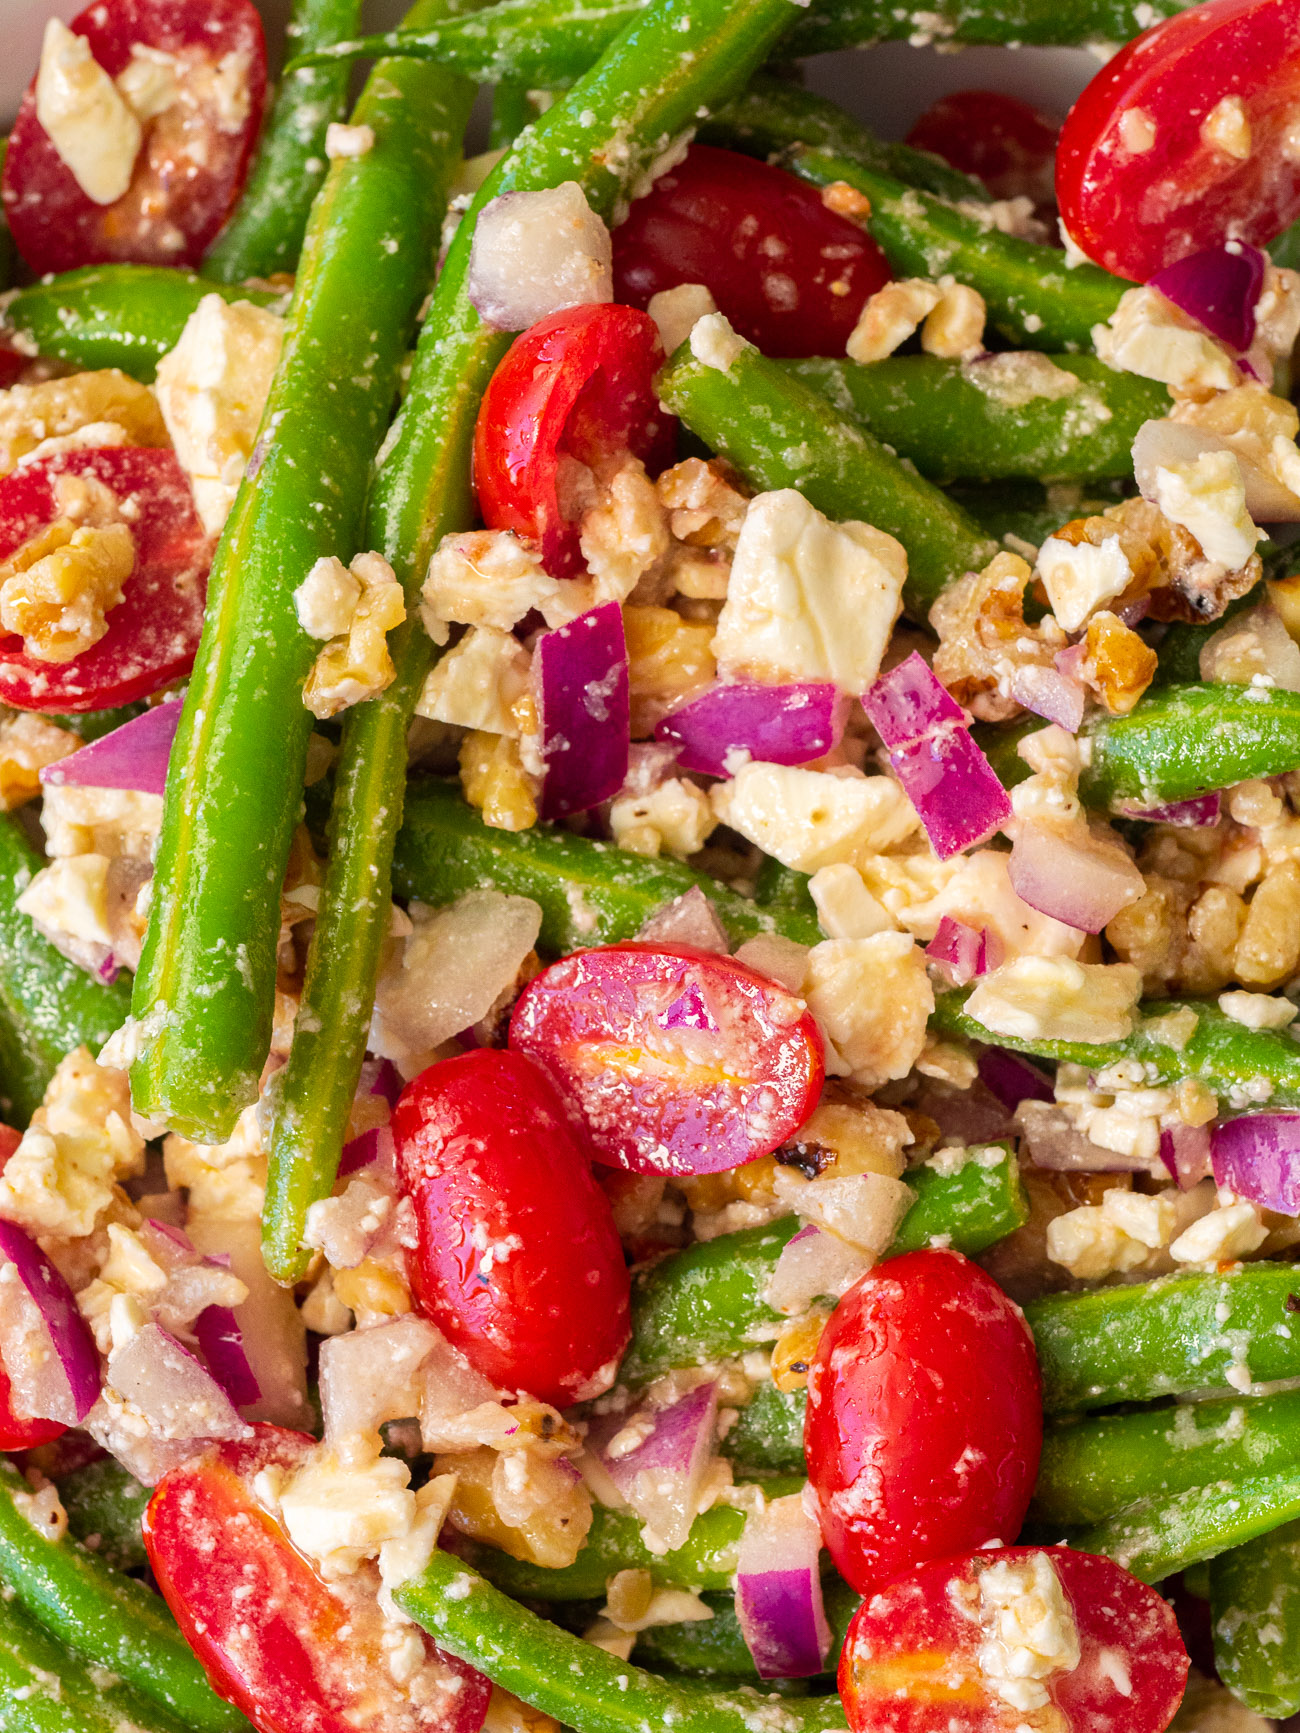 Extreme close-up of green bean salad with beans, tomatoes, feta, and walnuts